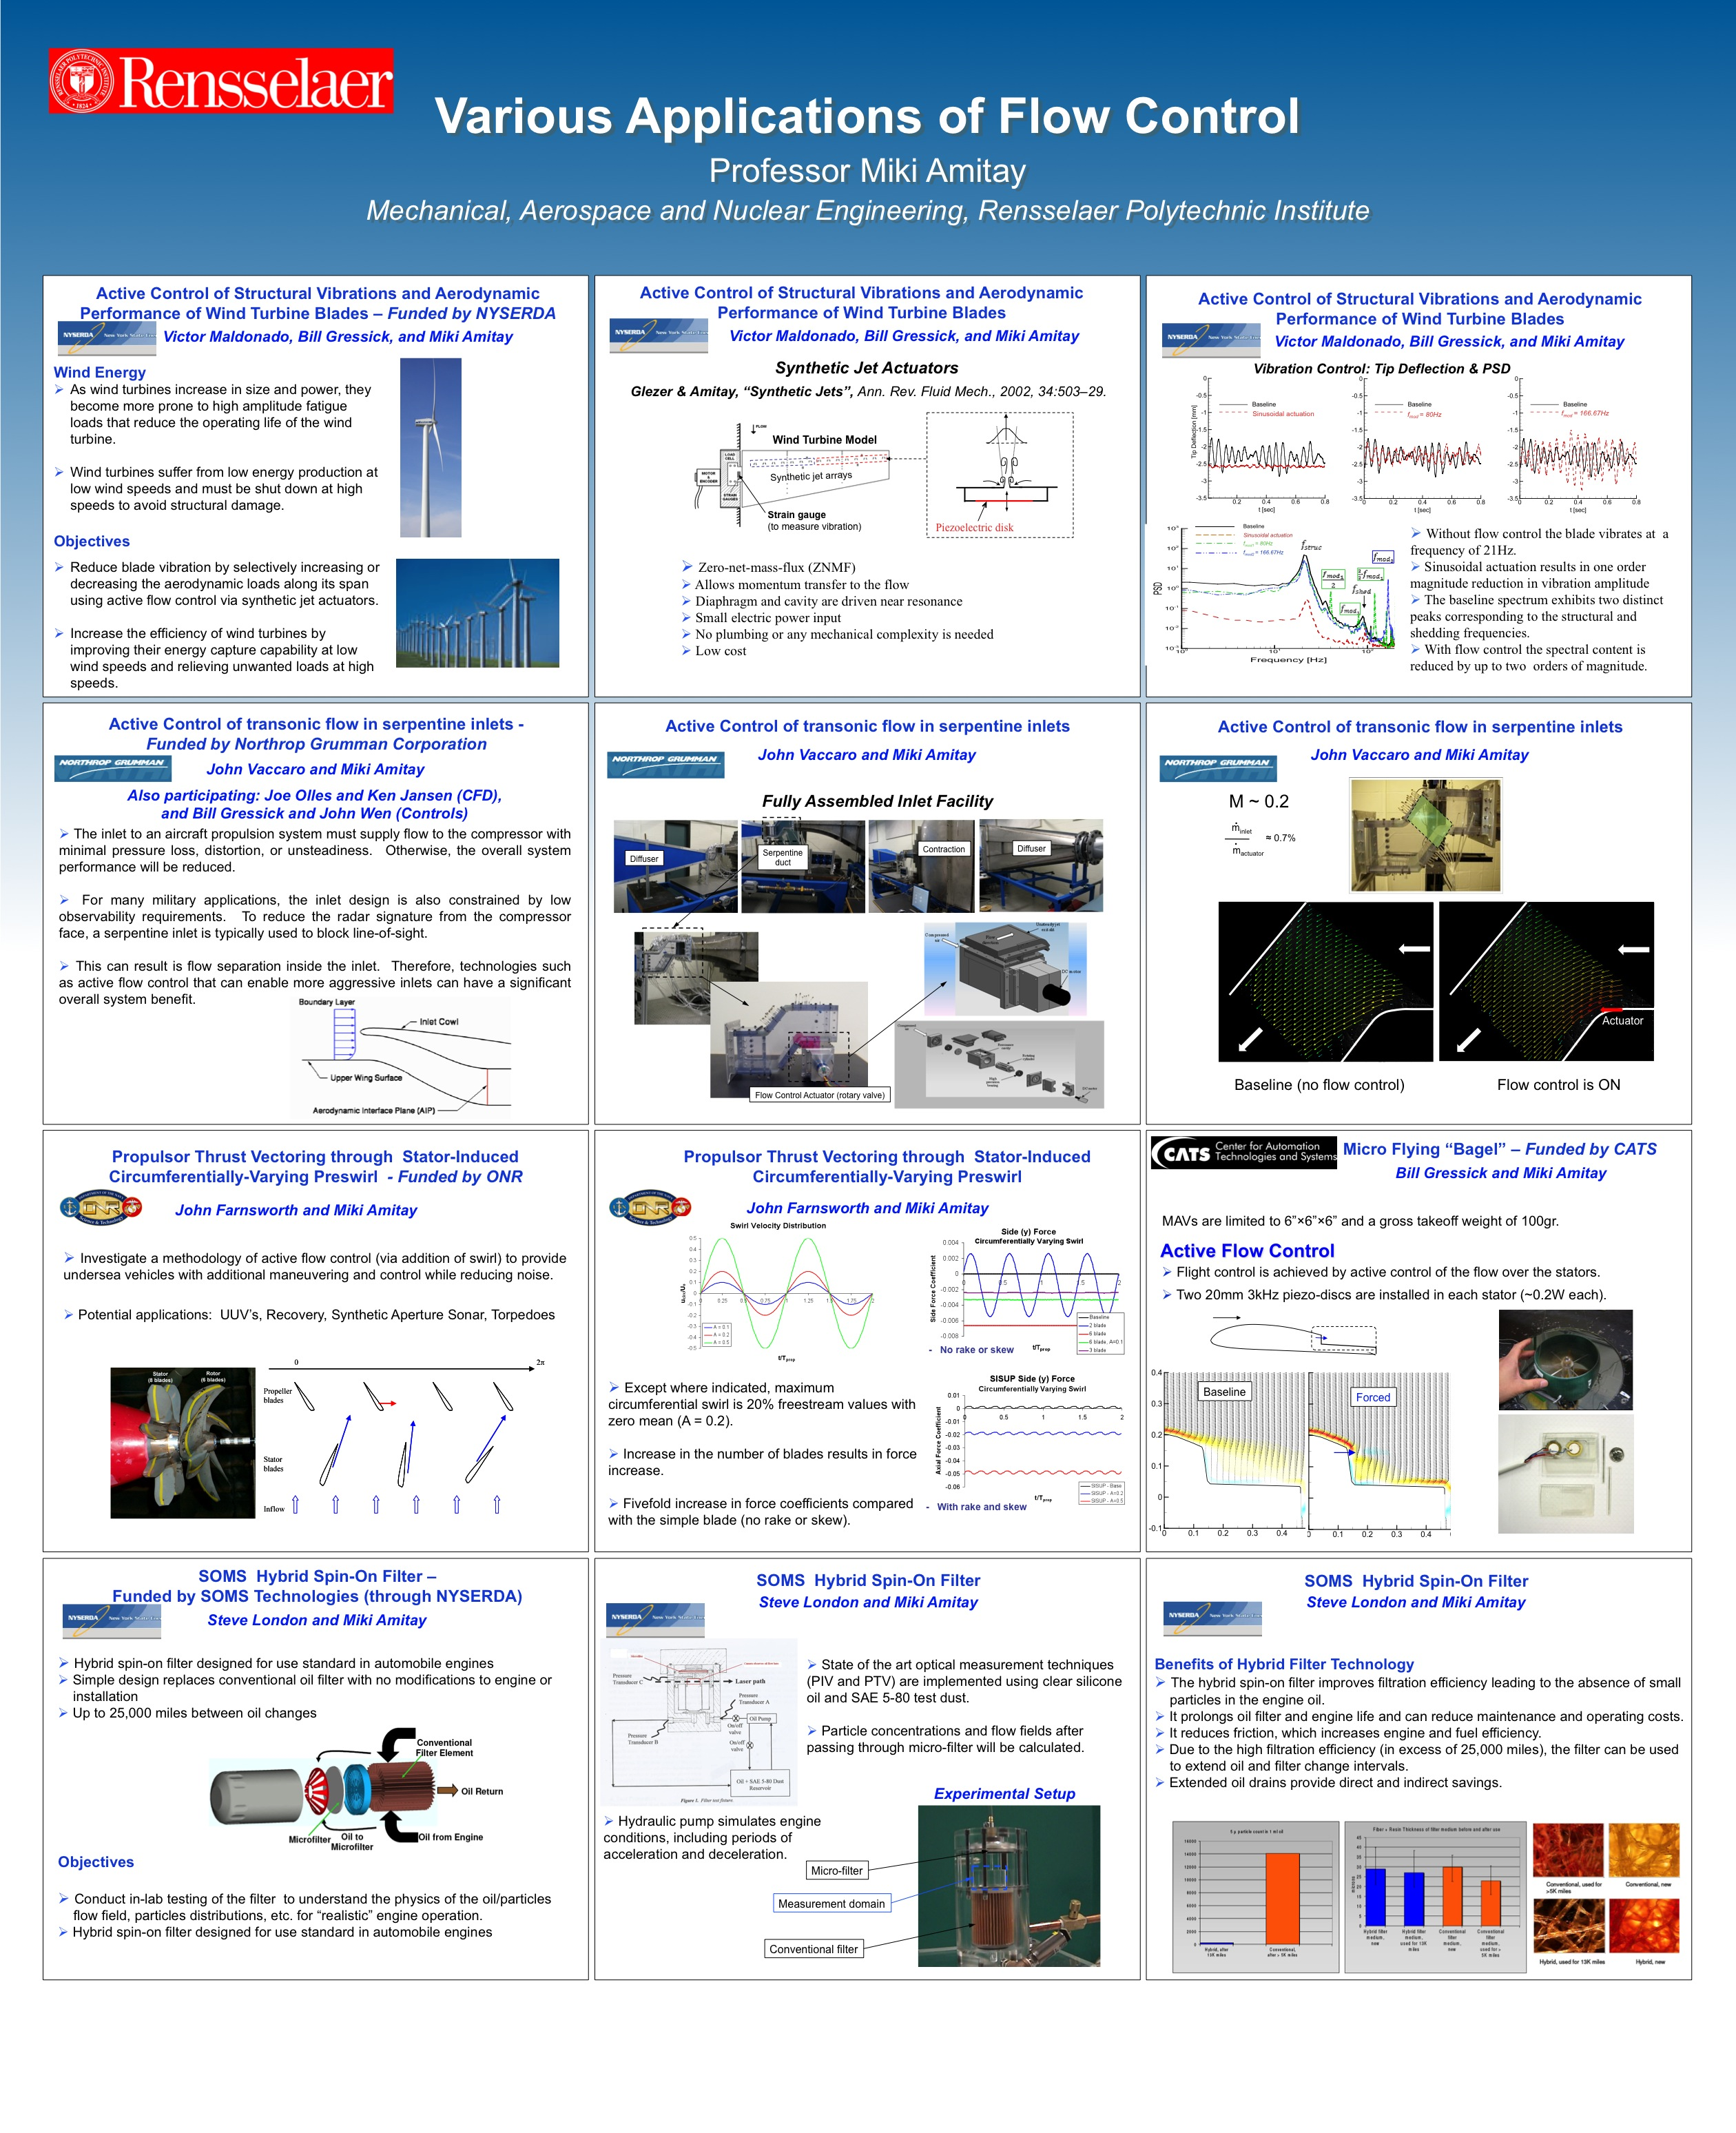 People - Microsoft Research